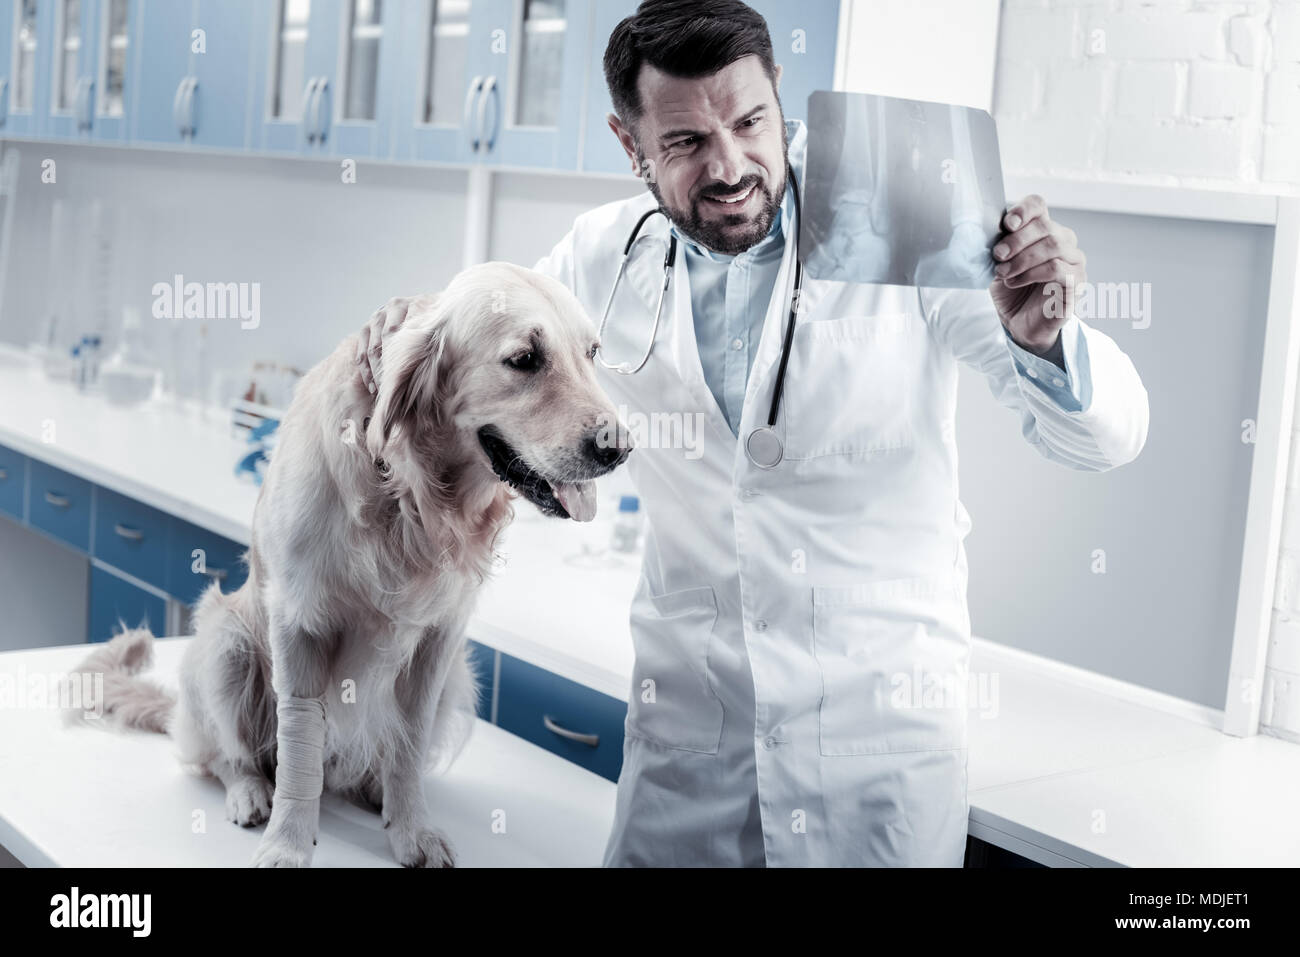 Positive nice doctor putting a diagnosis - Stock Image